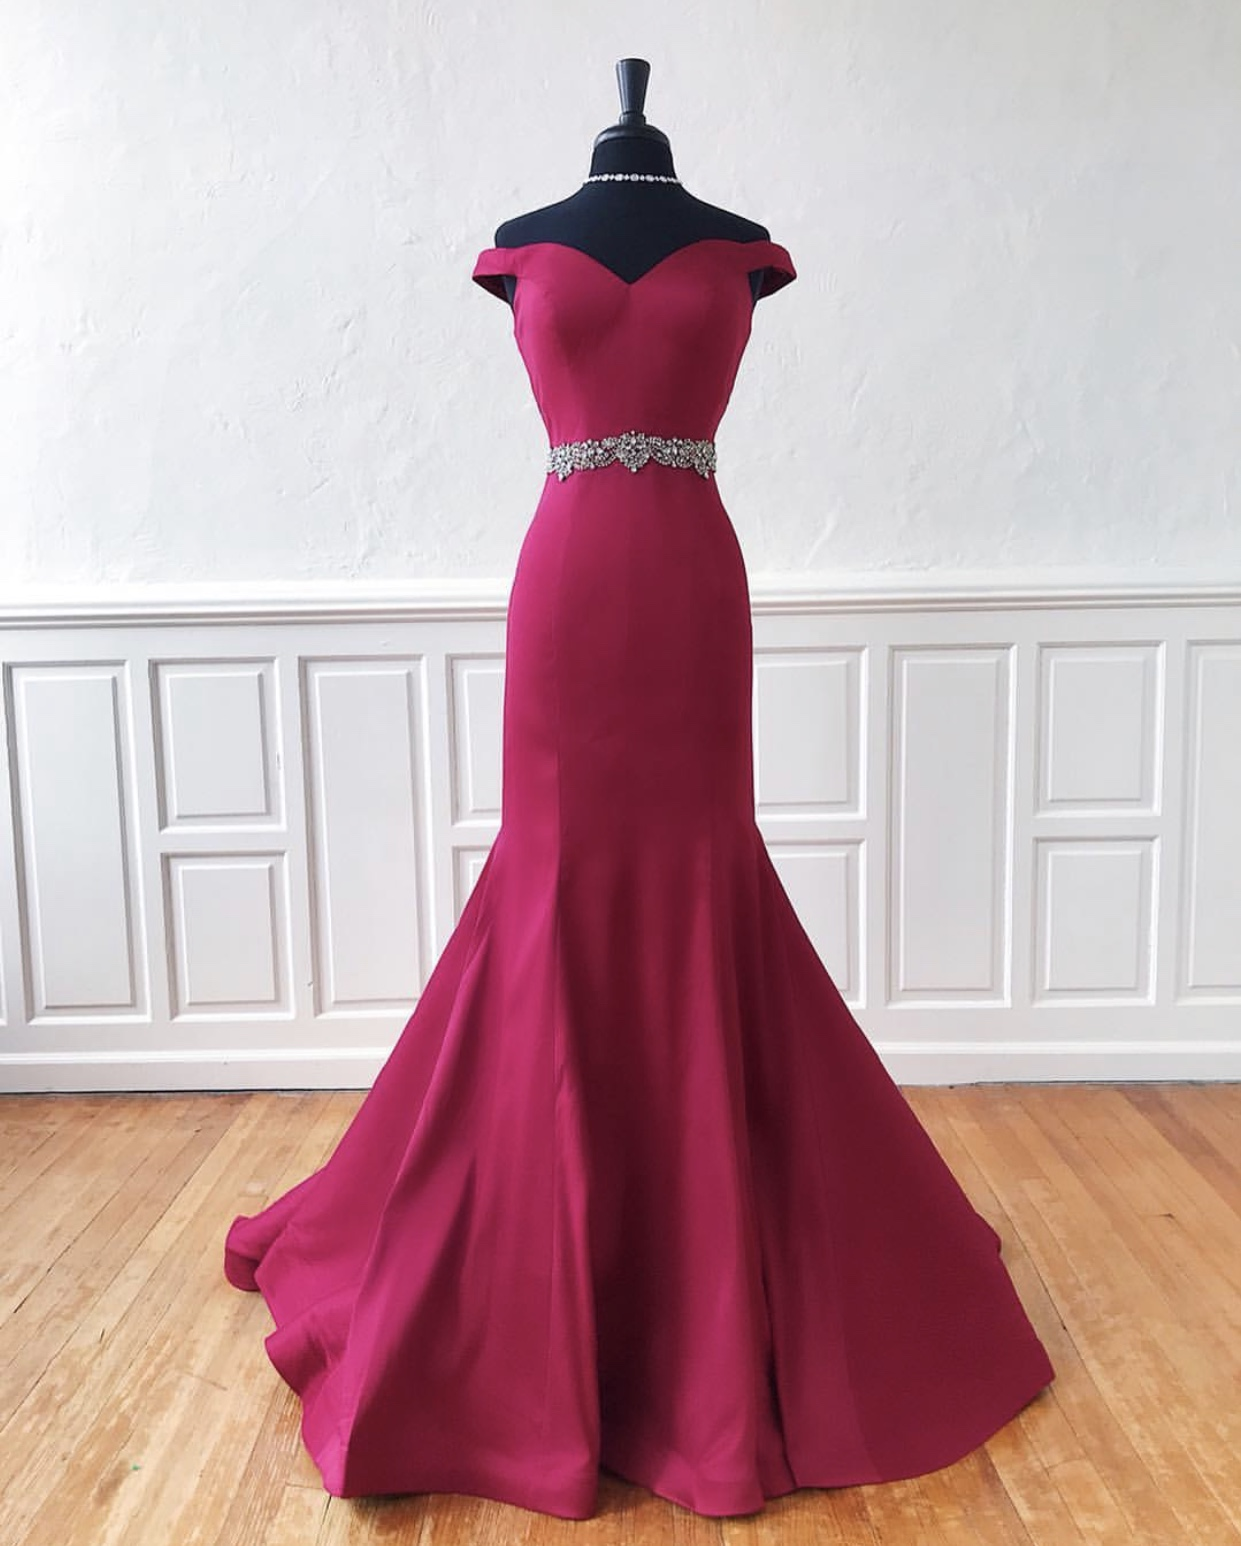 c4c684fa5c Off The Shoulder Mermaid Evening Dresses,Lovely Belt Long Evening Dresses  2019,Free Shipping Evening Party Dresses